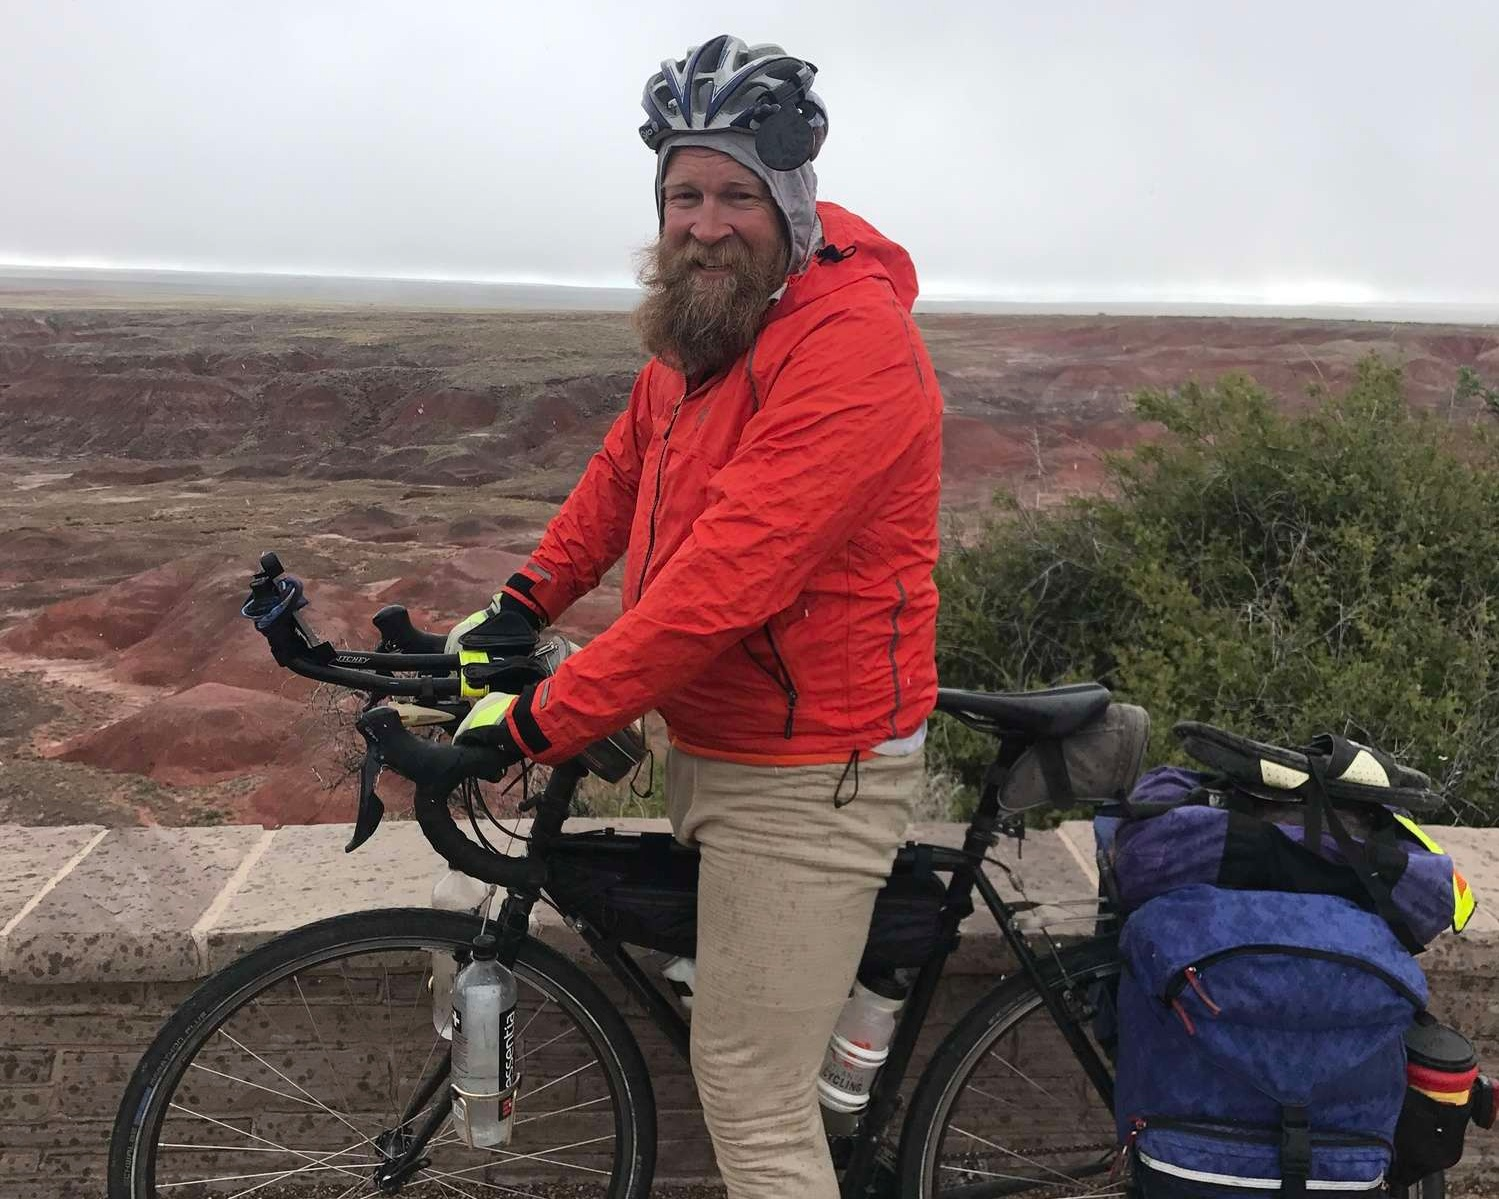 Our Senior Editor Brandon Lampley will guide you through his bikepacking gear packing list explain what is in his lightweight bike touring system.   Photo courtesy Brandon Lampley.